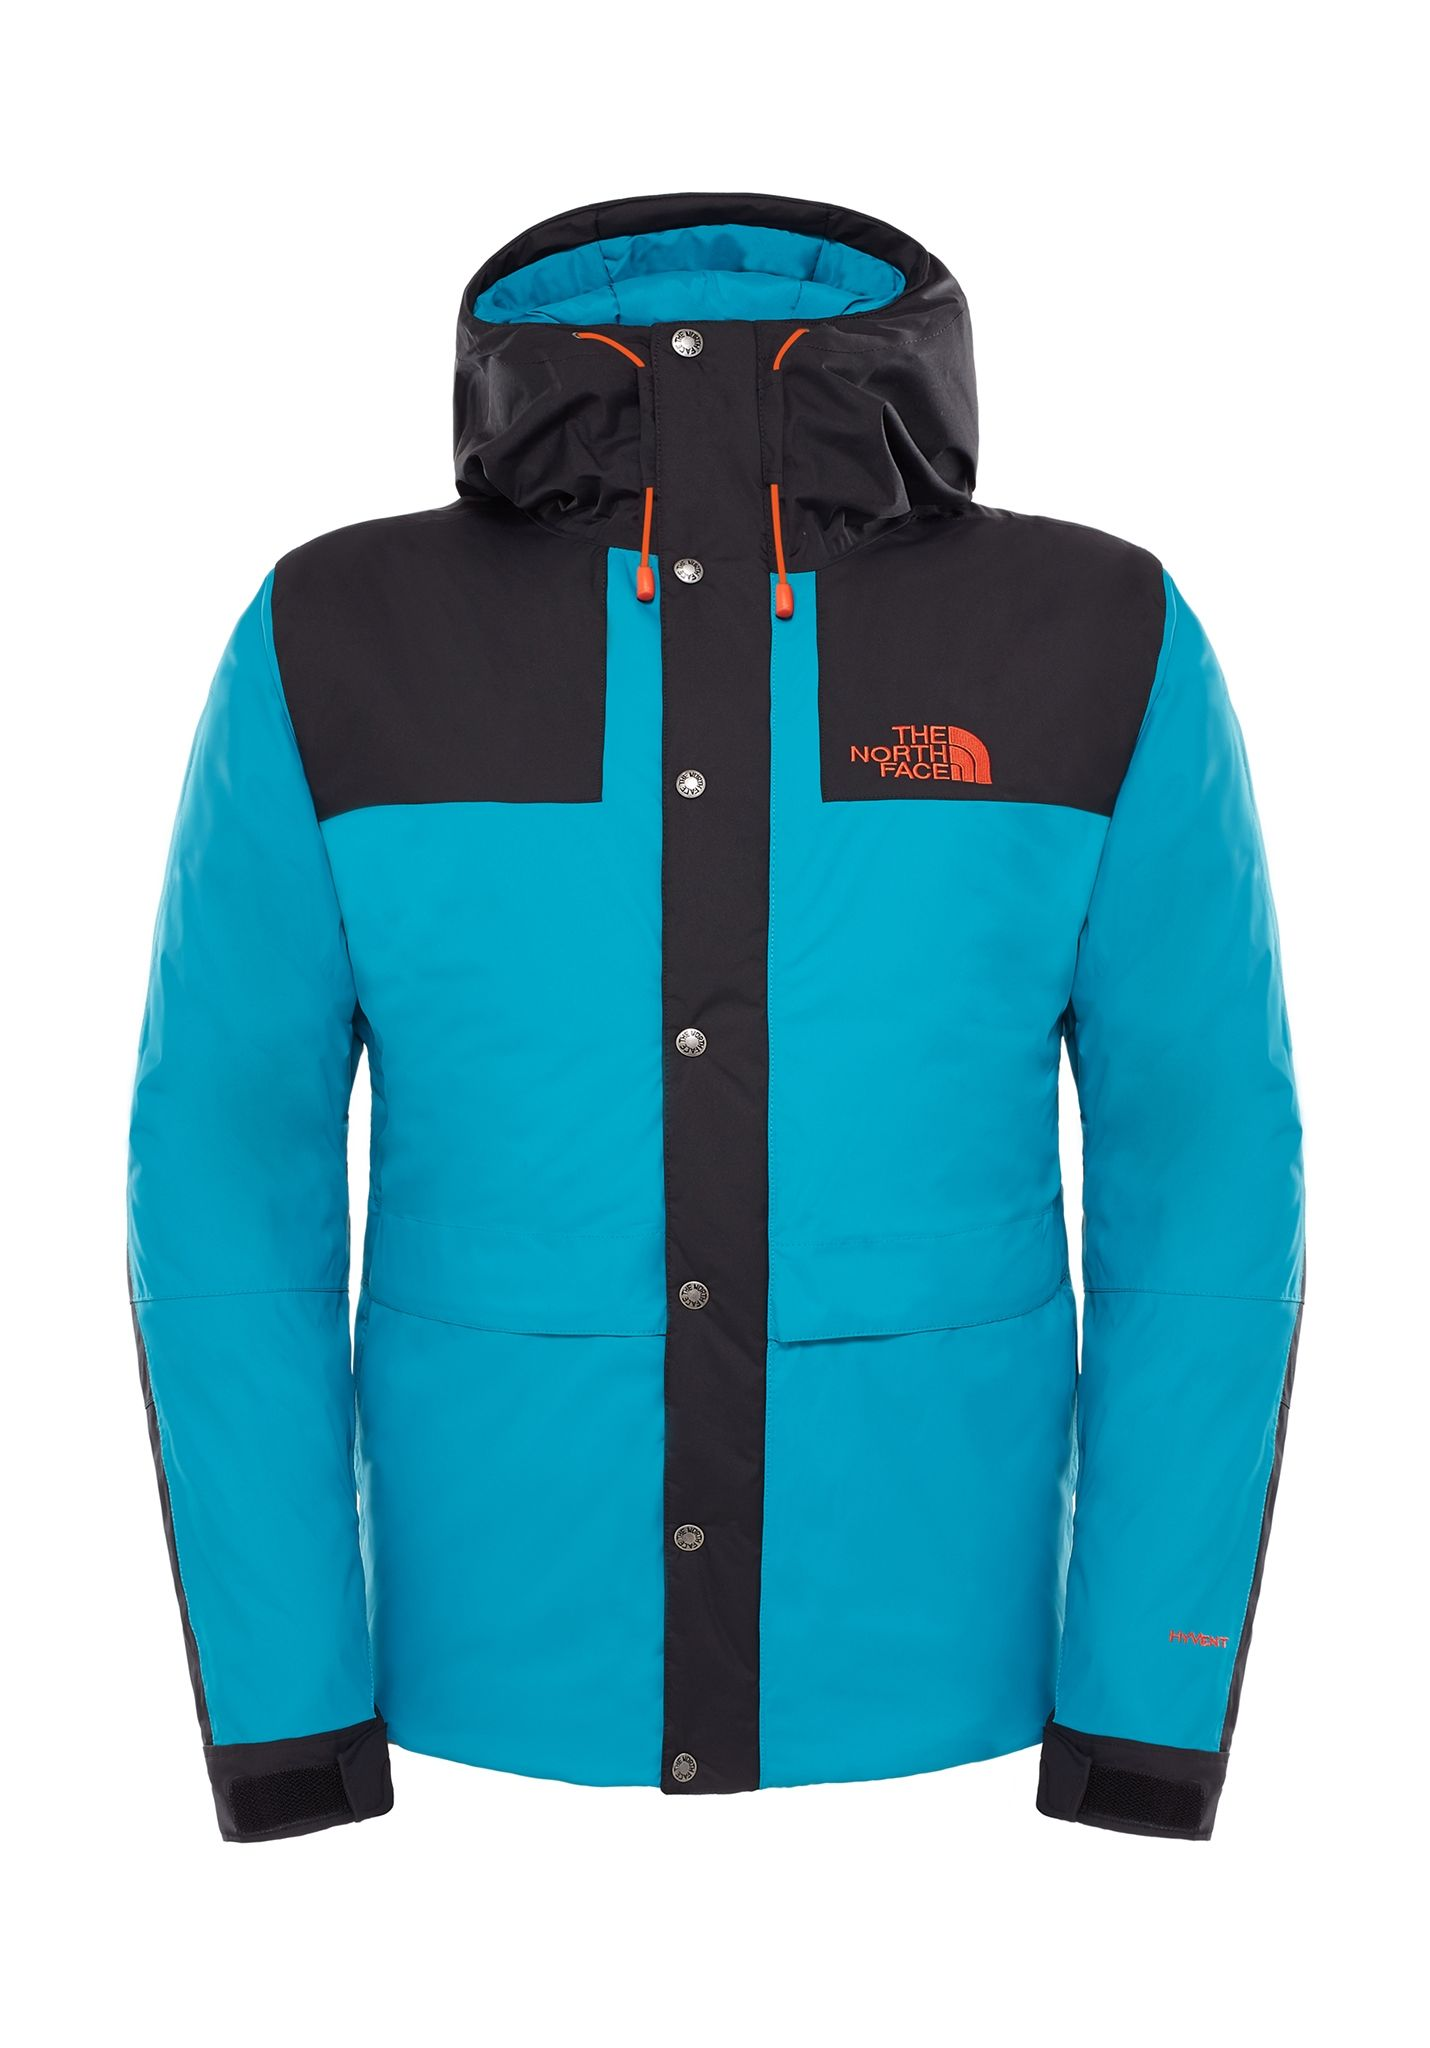 Giacca Face Per Mountain Insulated The North Tecnica 1985 Rage x51qHYUw